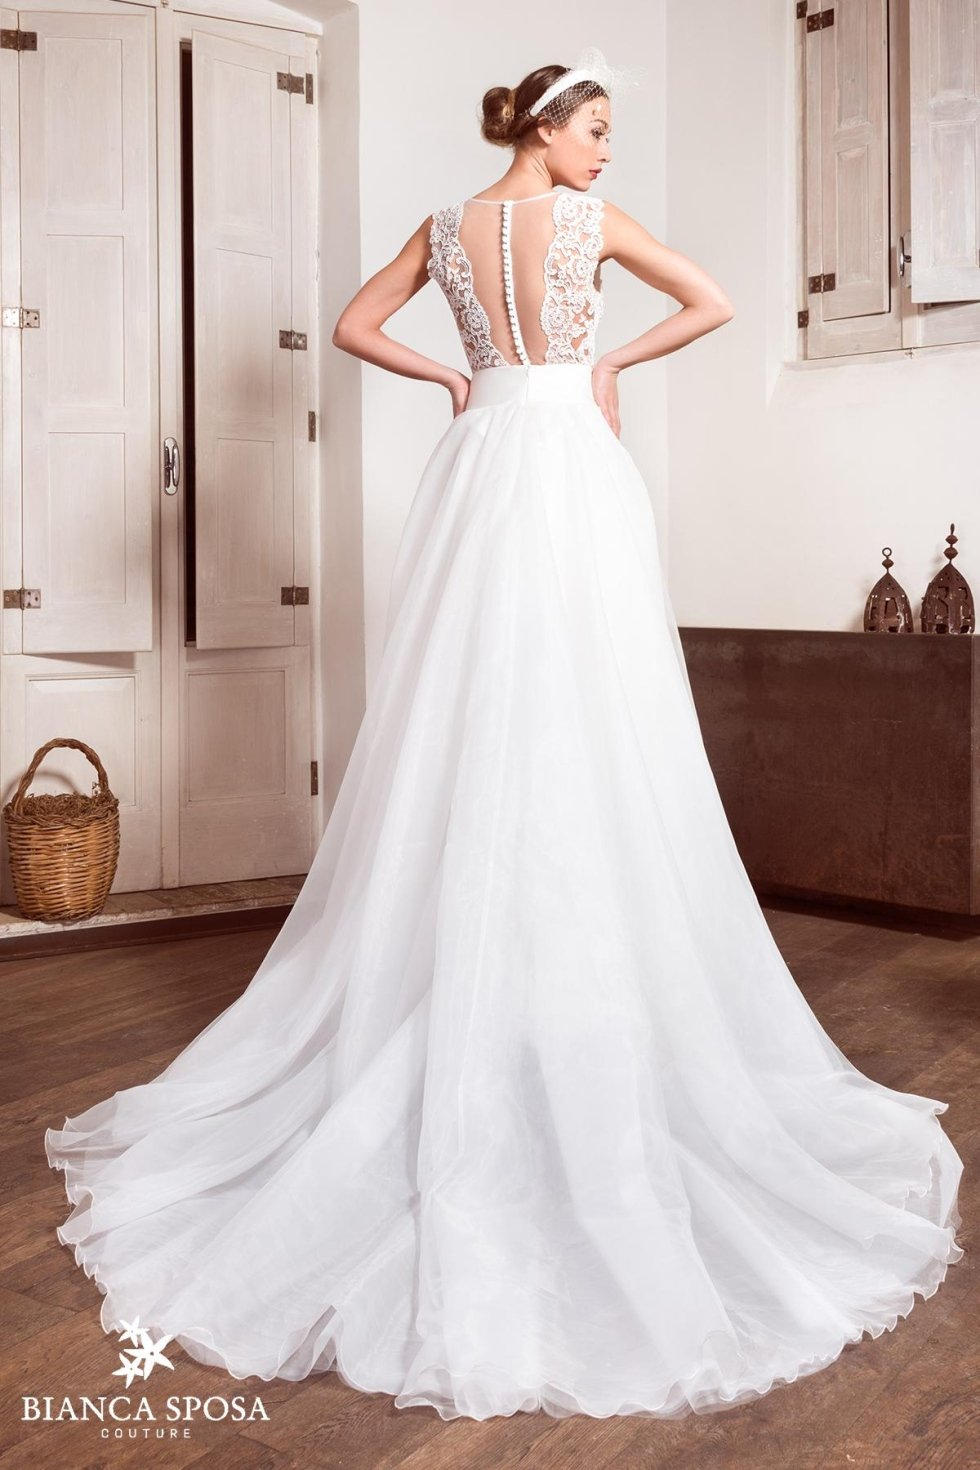 Bianca spose Couture